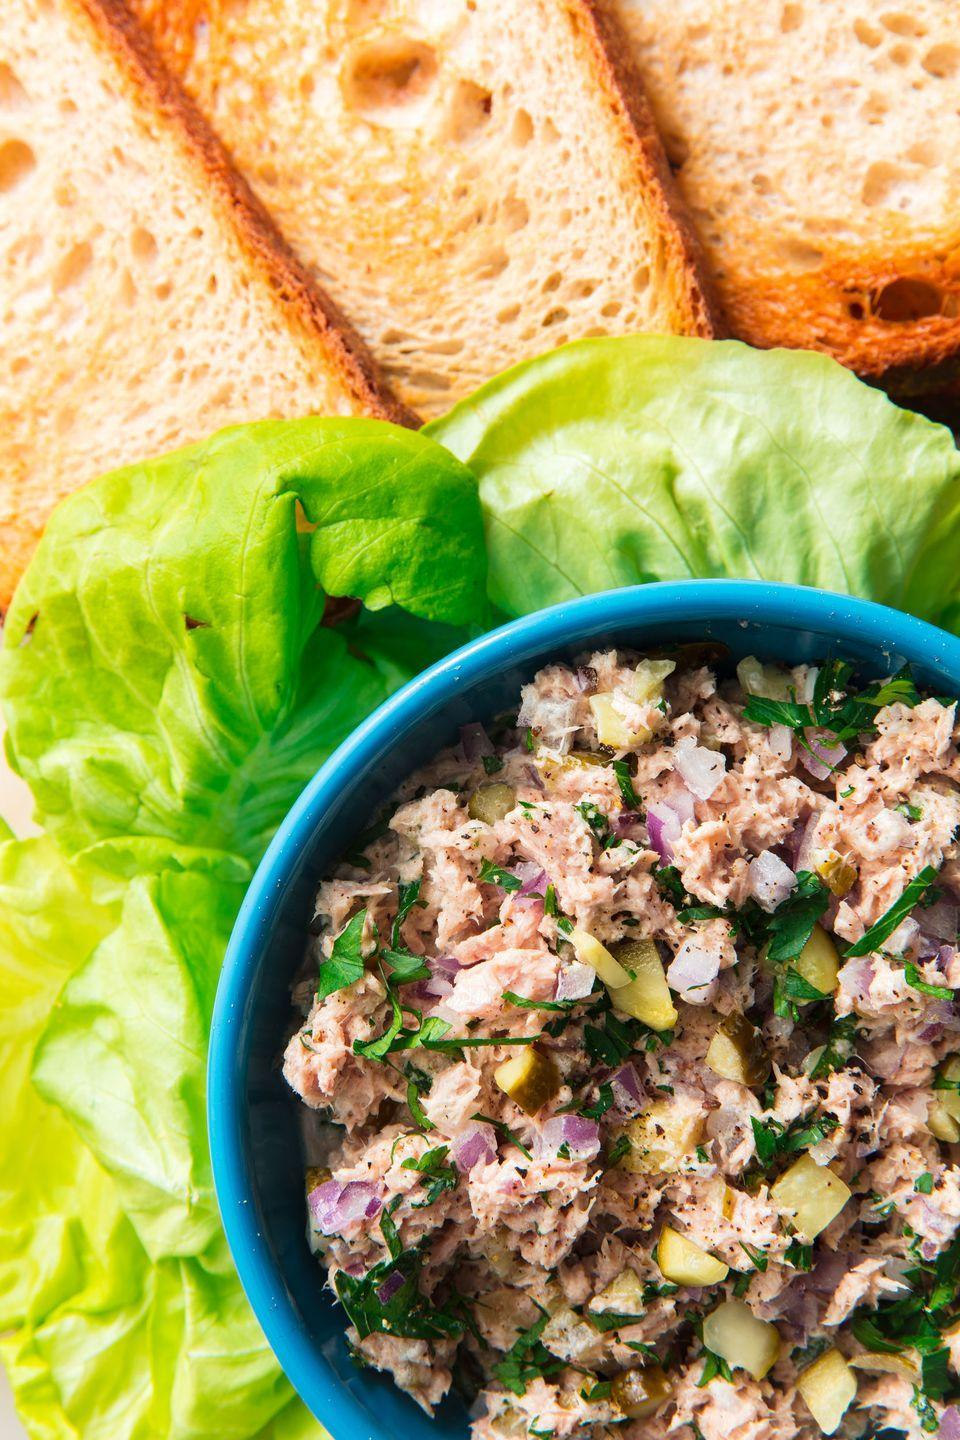 """<p>When a recipe is this good, it doesn't matter what your desk neighbors think.</p><p>Get the recipe from <a href=""""https://www.delish.com/cooking/recipe-ideas/a19637640/best-tuna-salad-recipe/"""" rel=""""nofollow noopener"""" target=""""_blank"""" data-ylk=""""slk:Delish"""" class=""""link rapid-noclick-resp"""">Delish</a>.</p>"""